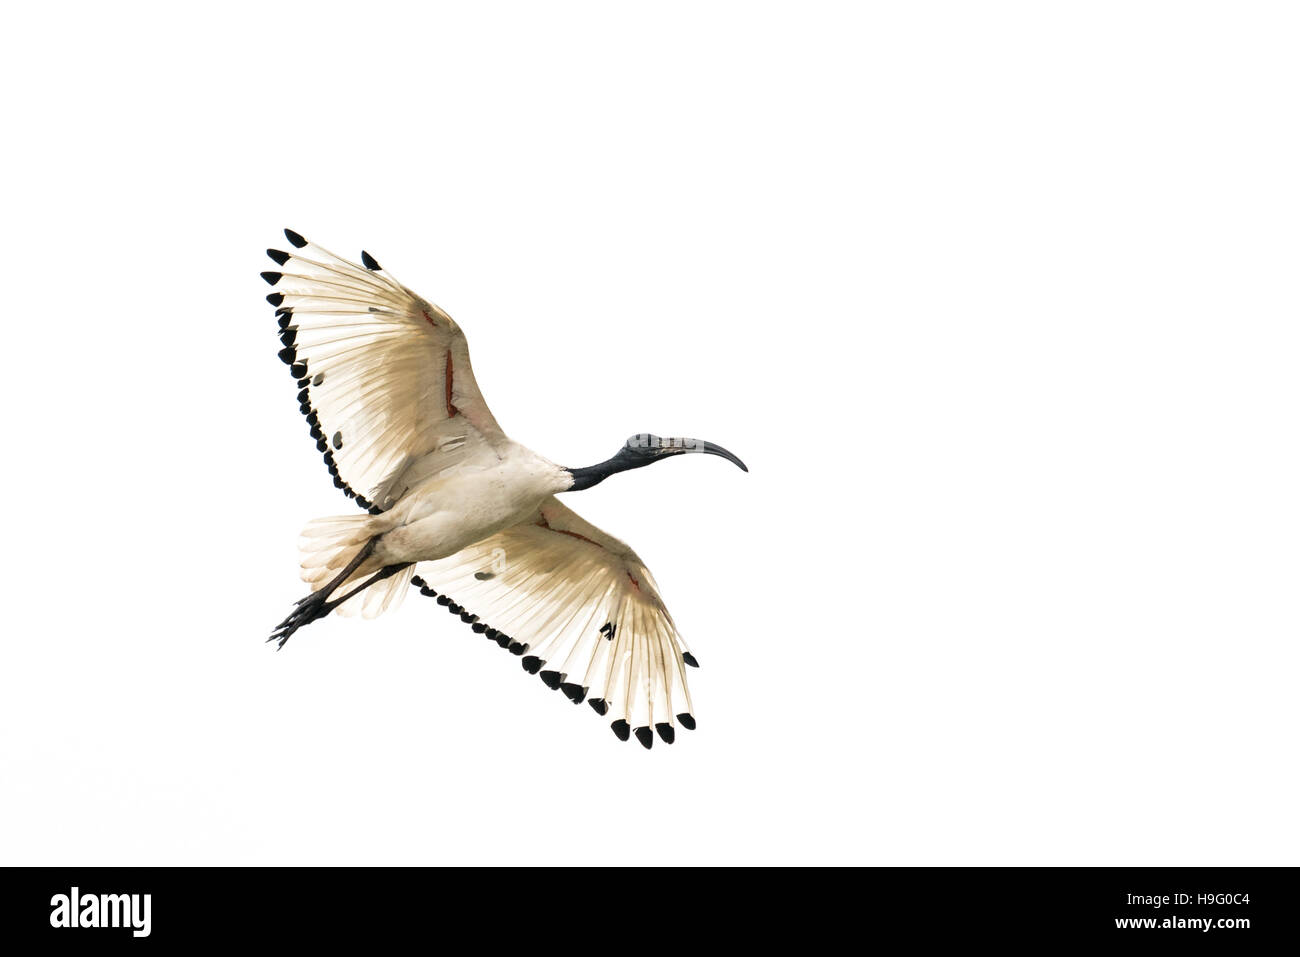 A white Ibis flying in the air with its wings spread - Stock Image